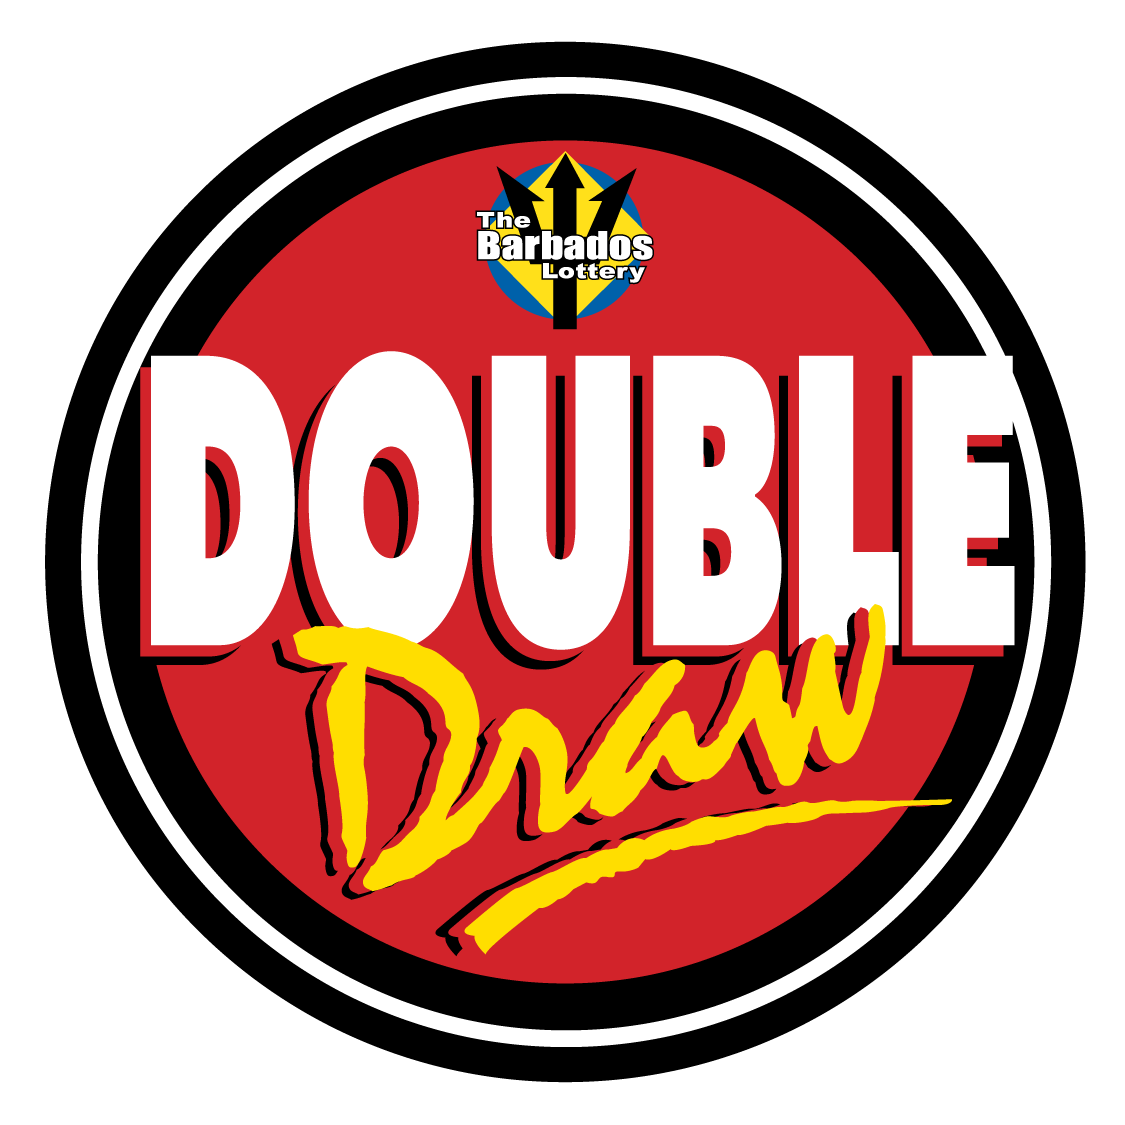 DOUBLE DRAW